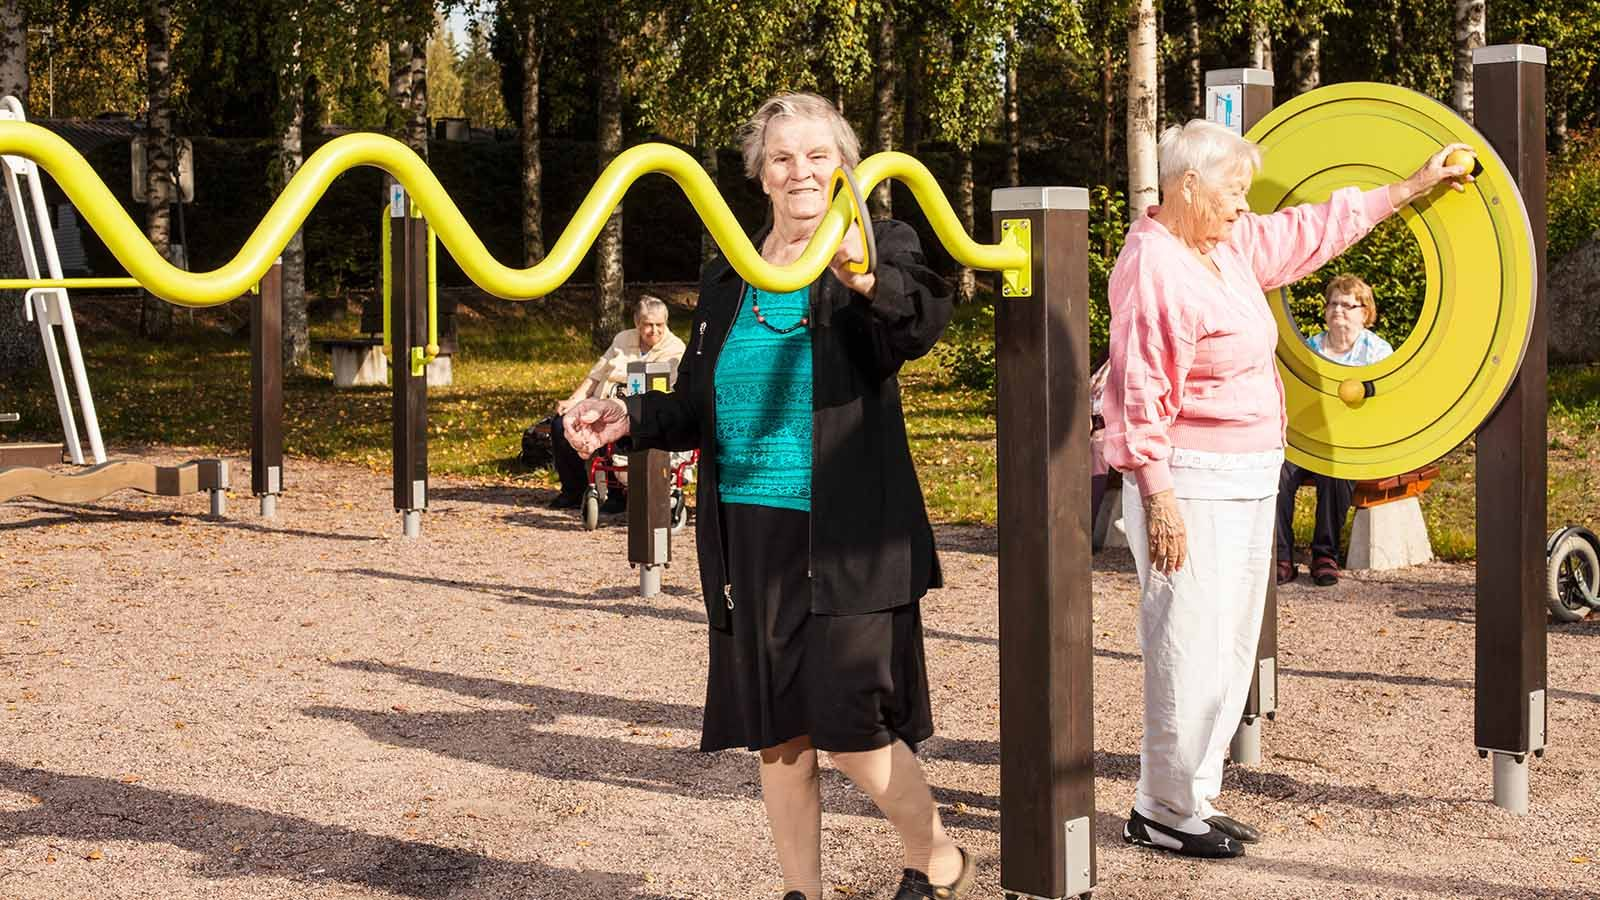 Sport Equipment For Active Ageing Playground Design Parking Design Outdoor Workouts